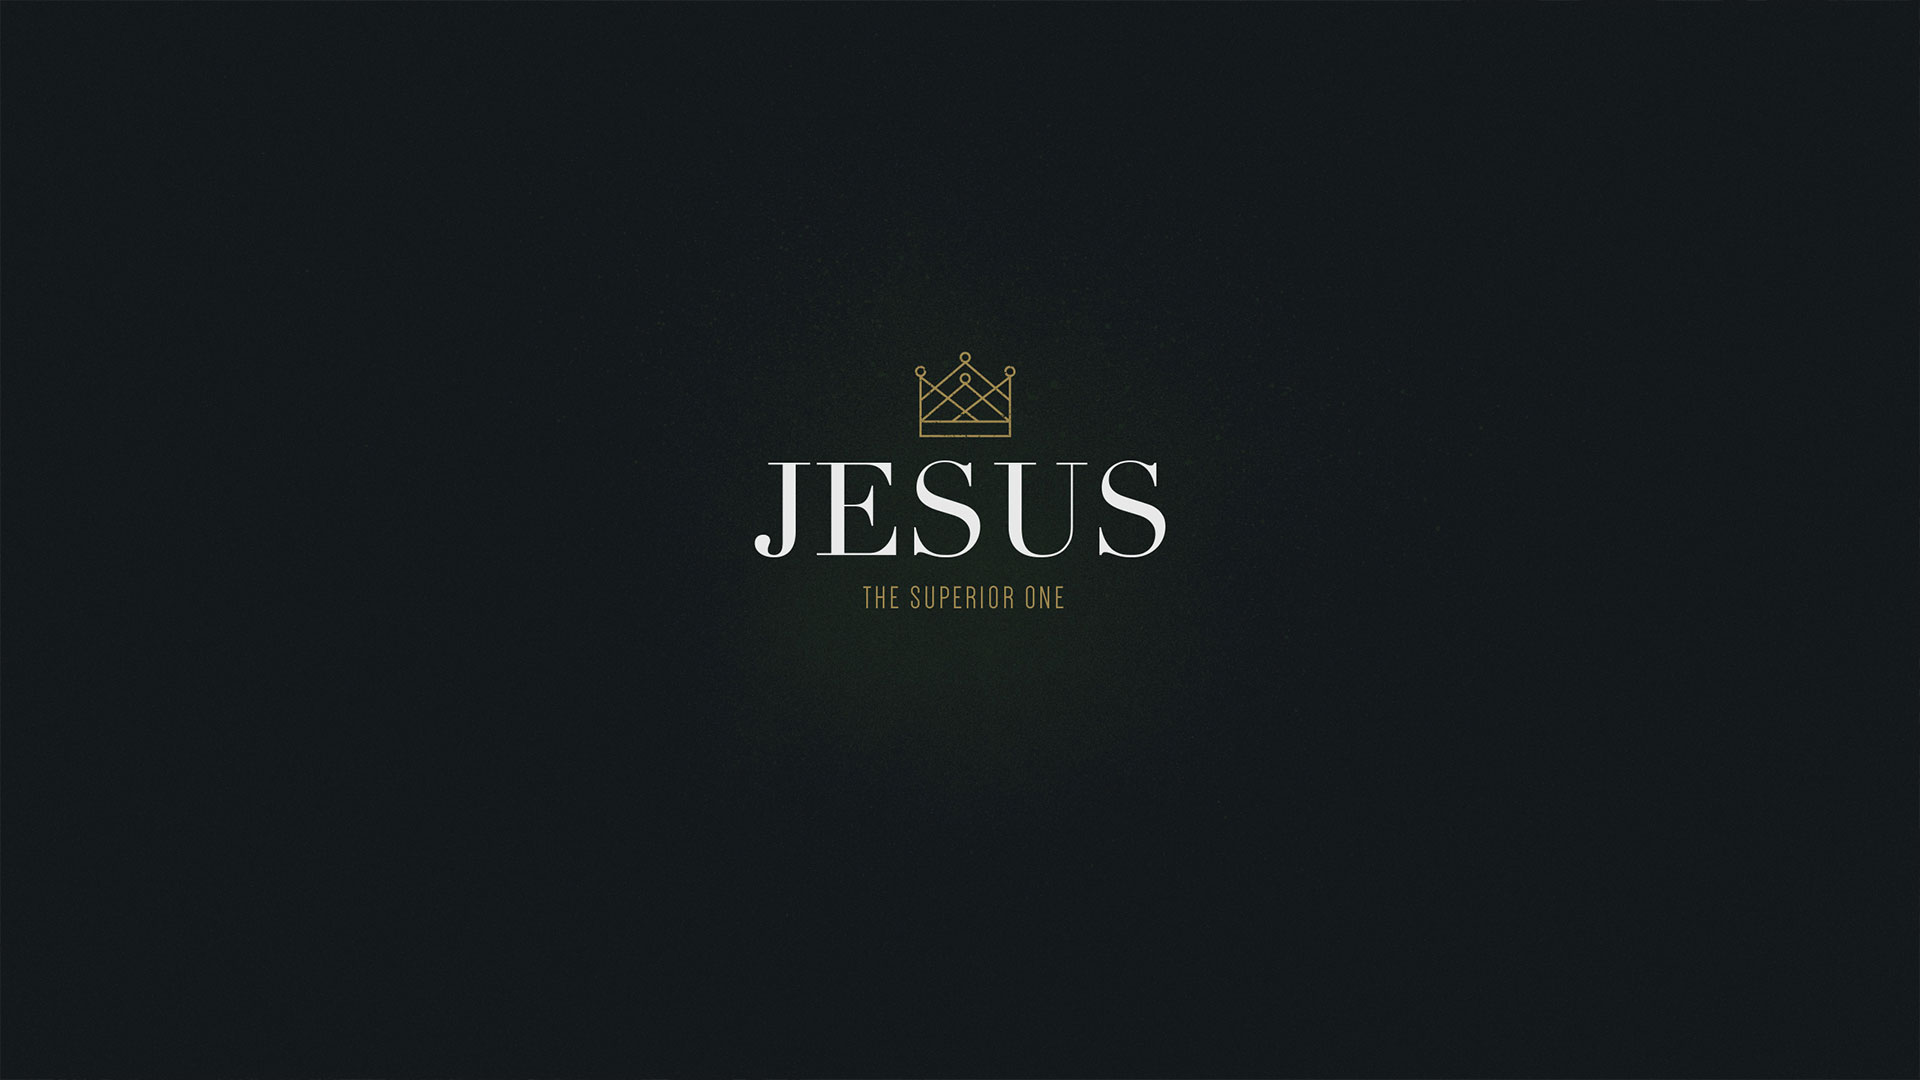 jesus wallpapers android apps on google play 1920a—1080